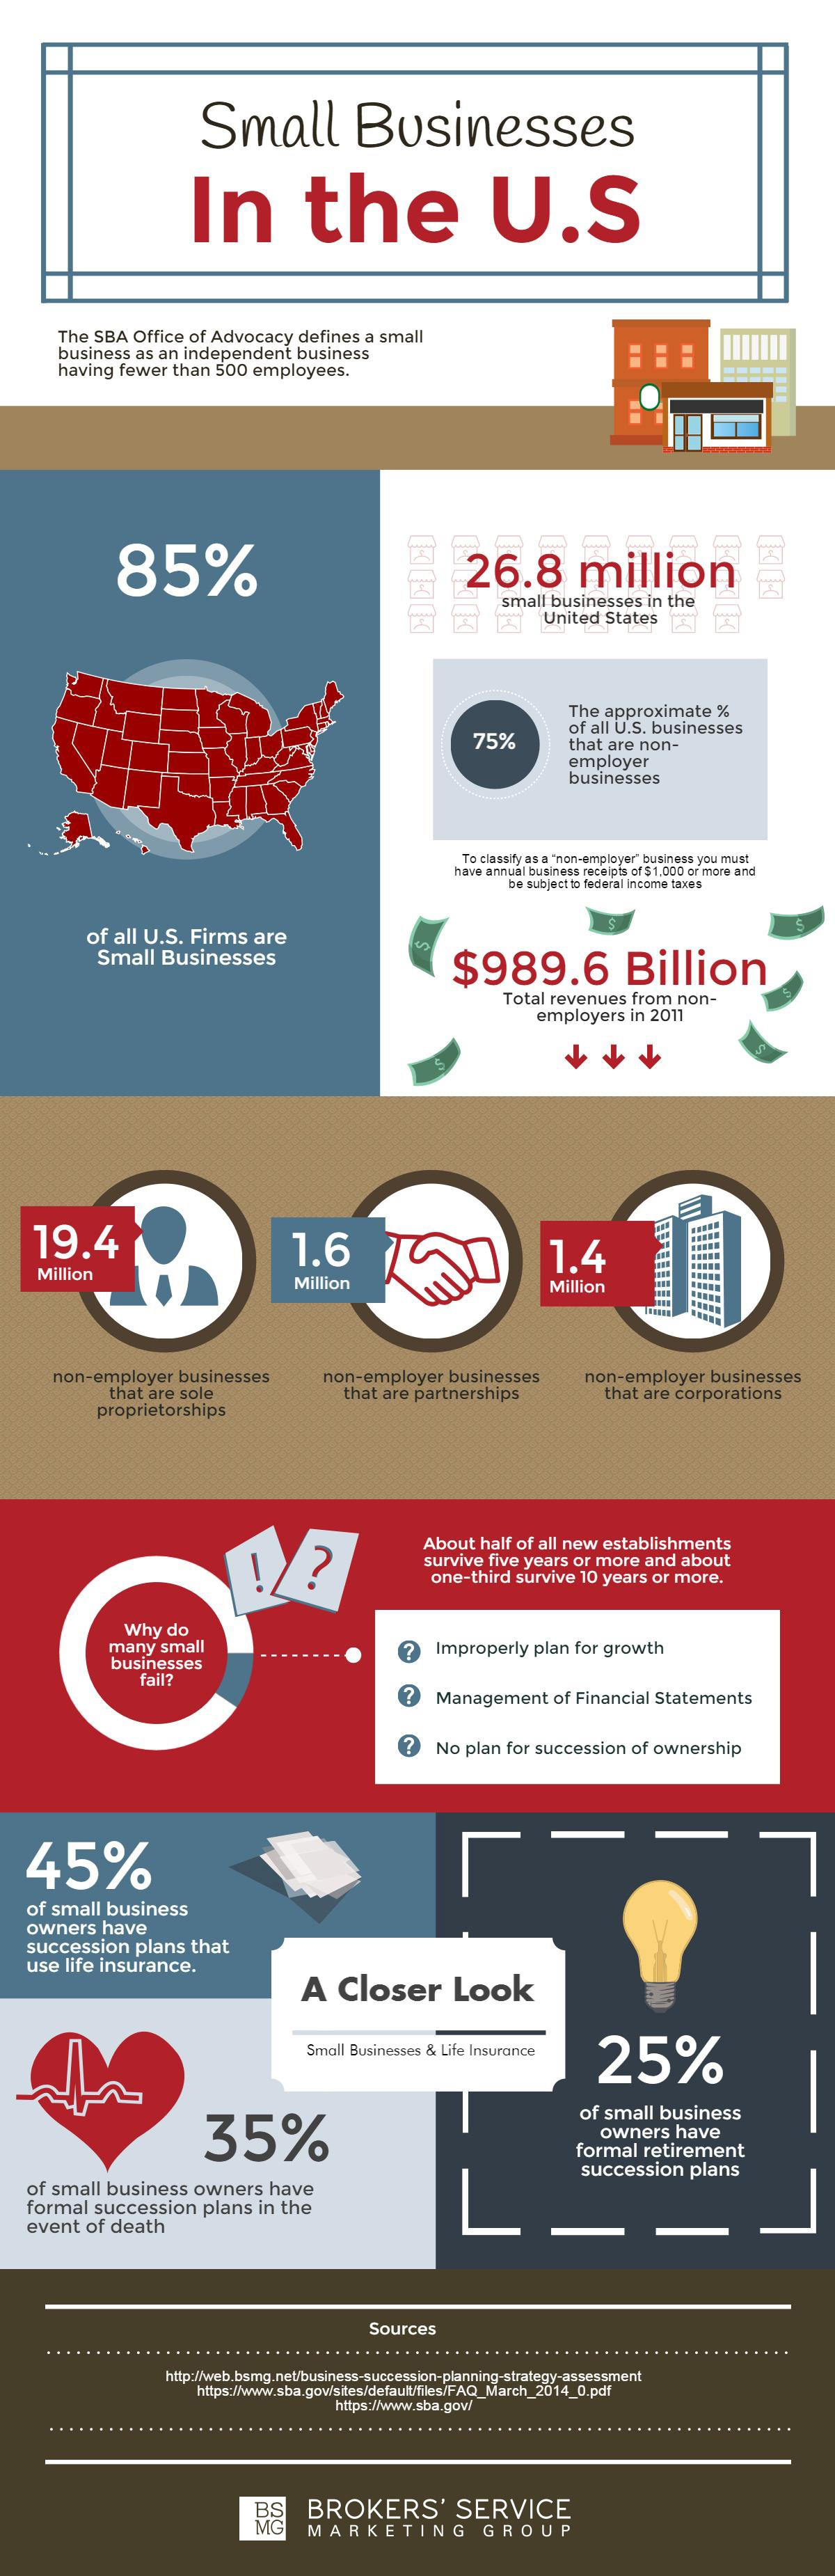 Small-Business-Infographic.jpg